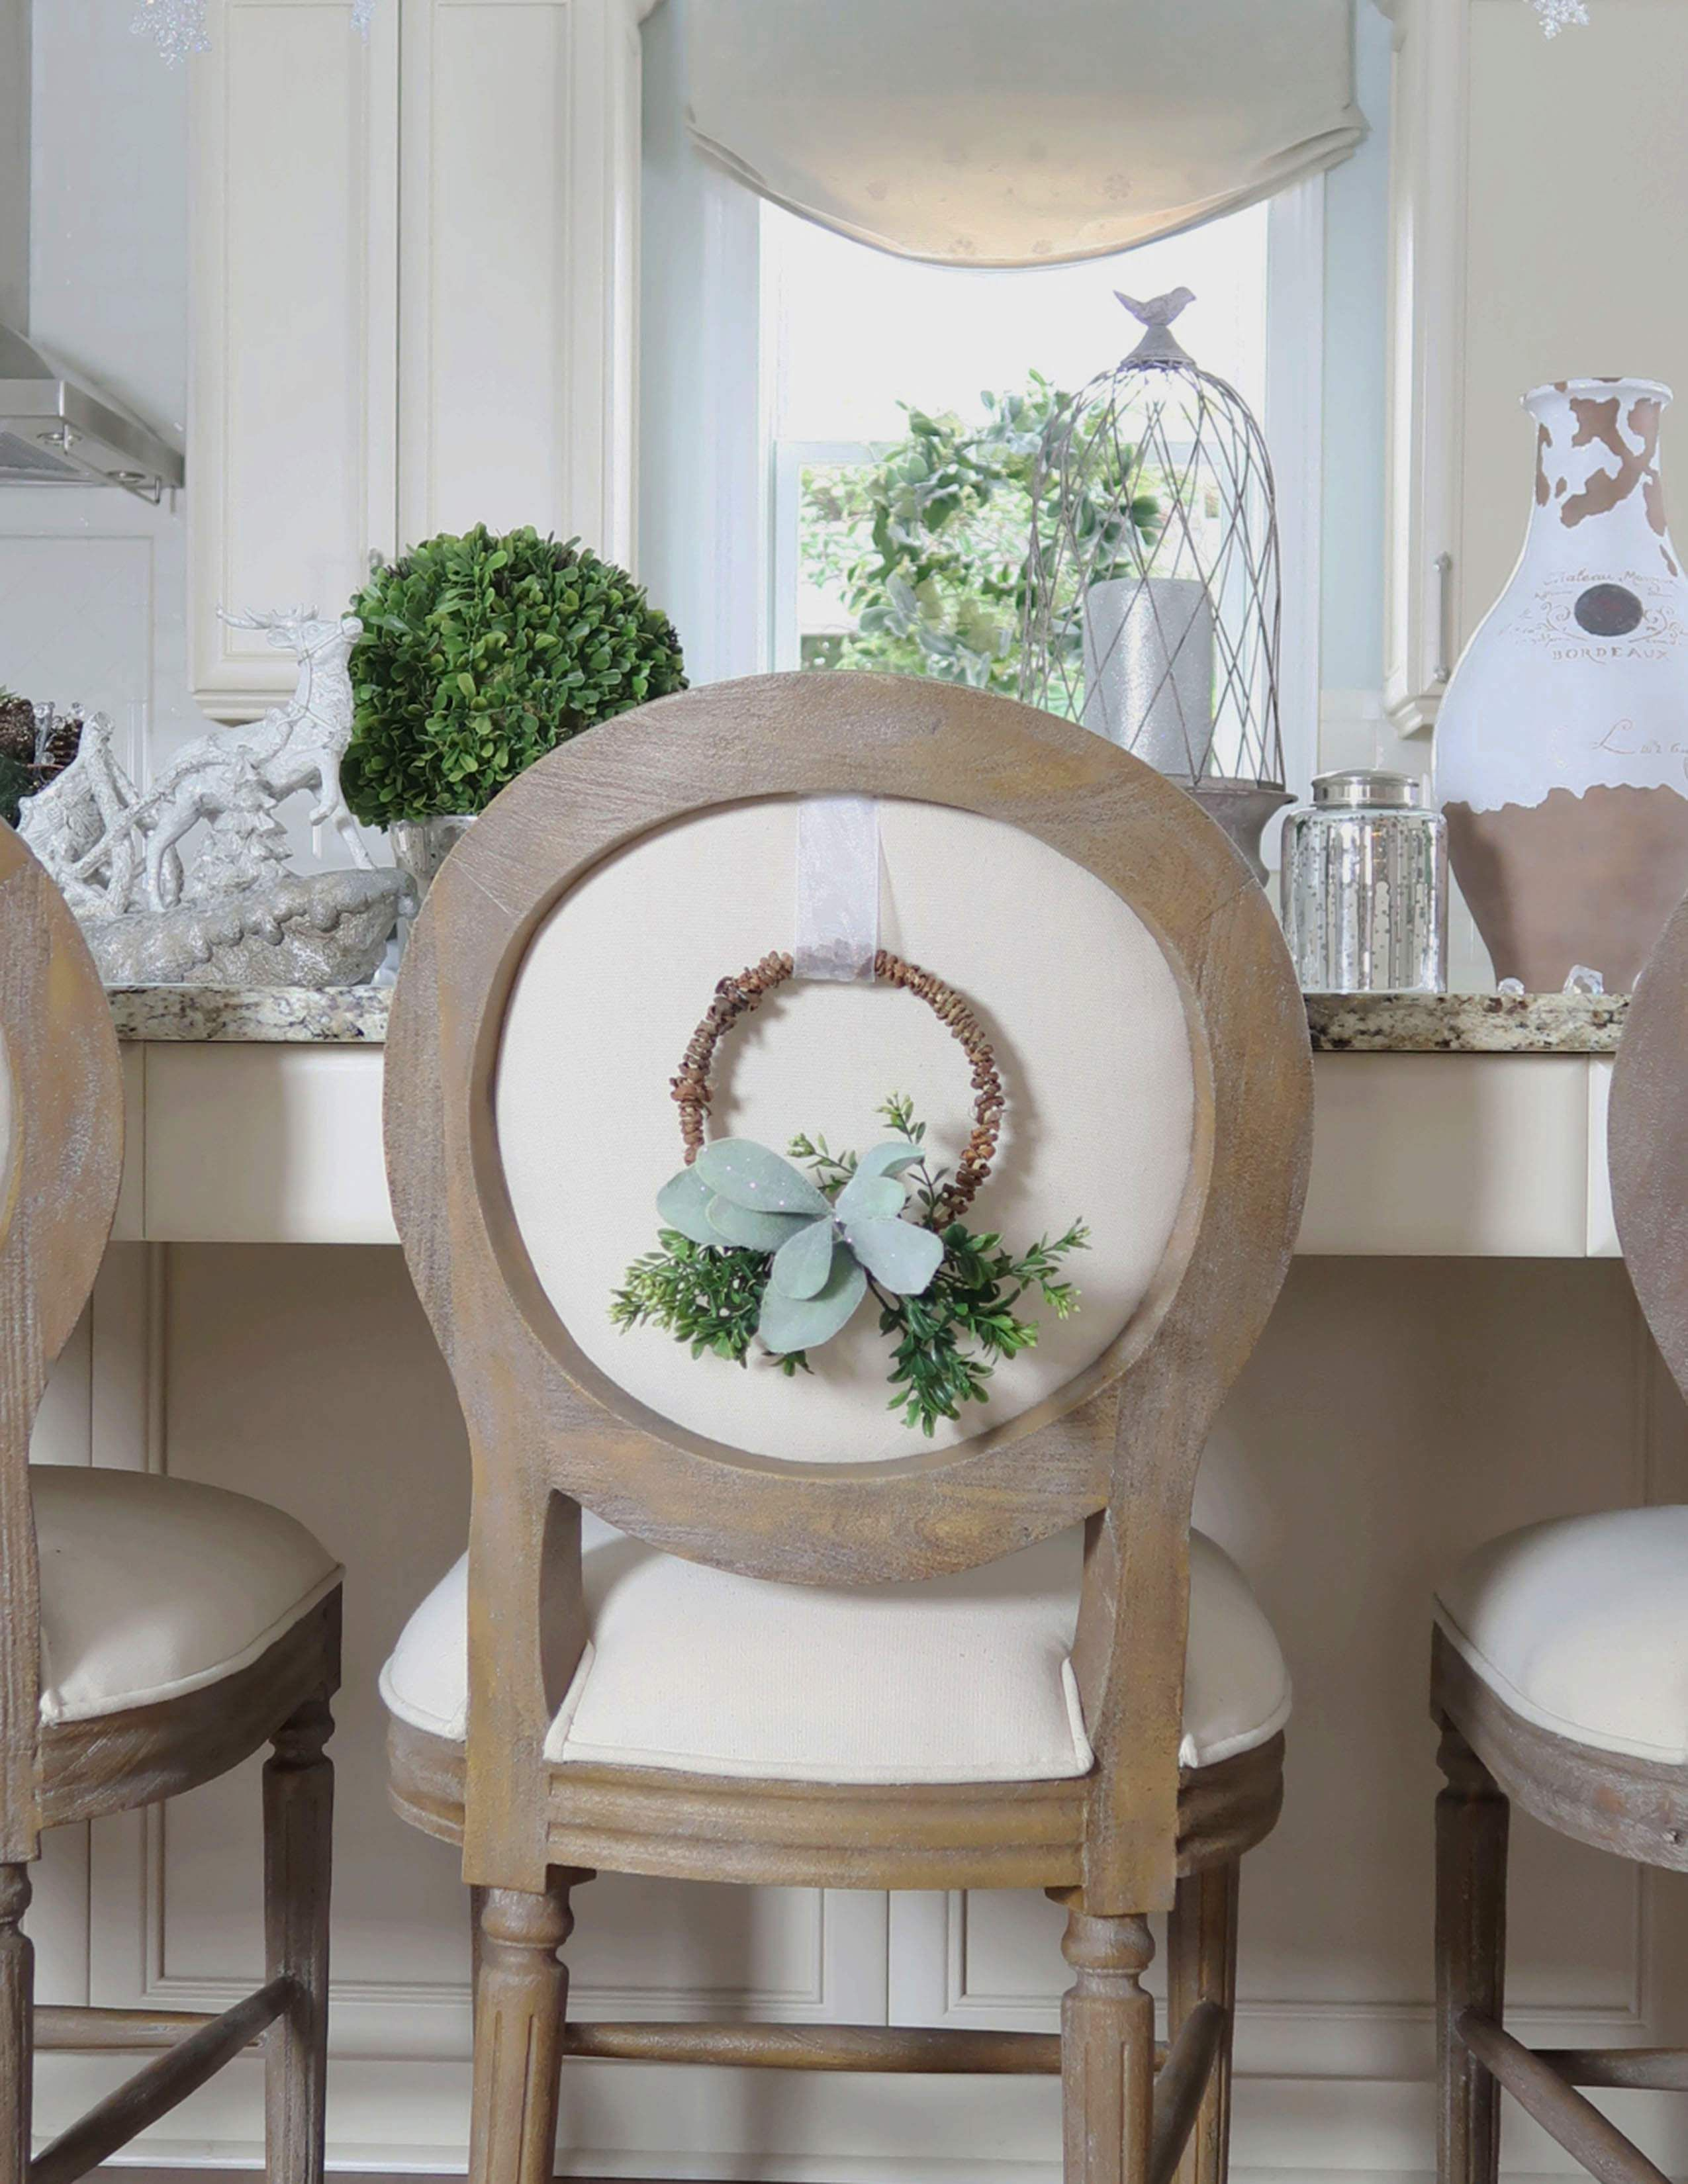 How To Make A Wreath For The Back Of A Chair Chair Backs Chair Decor